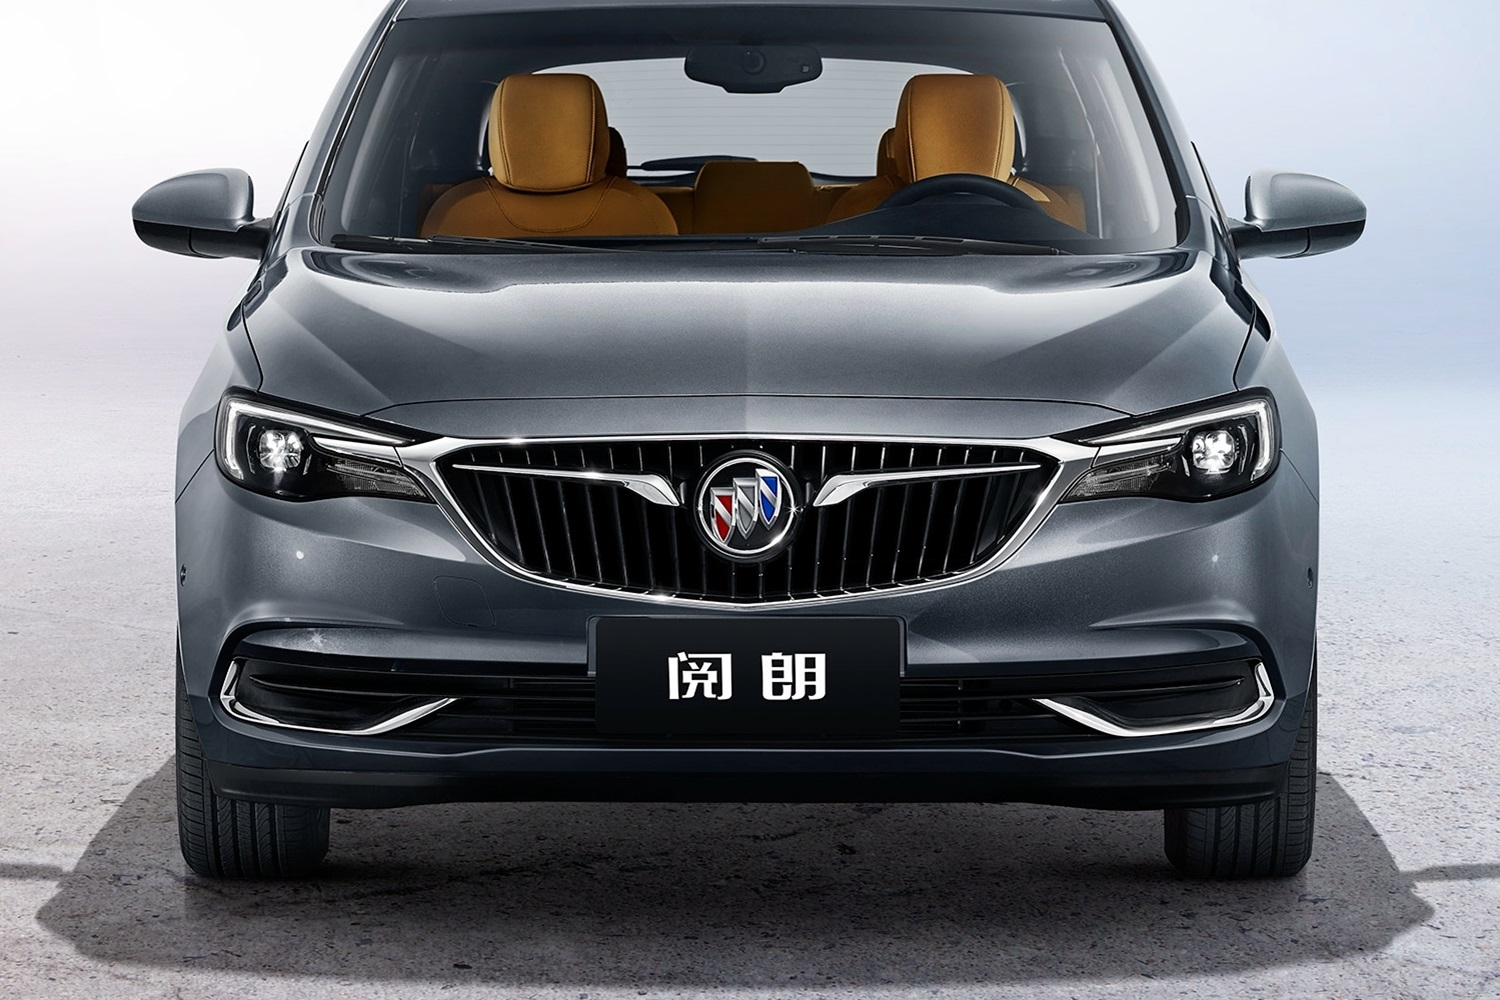 Buick Completes Update Of Sedan Portfolio In China | Gm New 2022 Buick Verano Trim Levels, Performance Parts, Cost